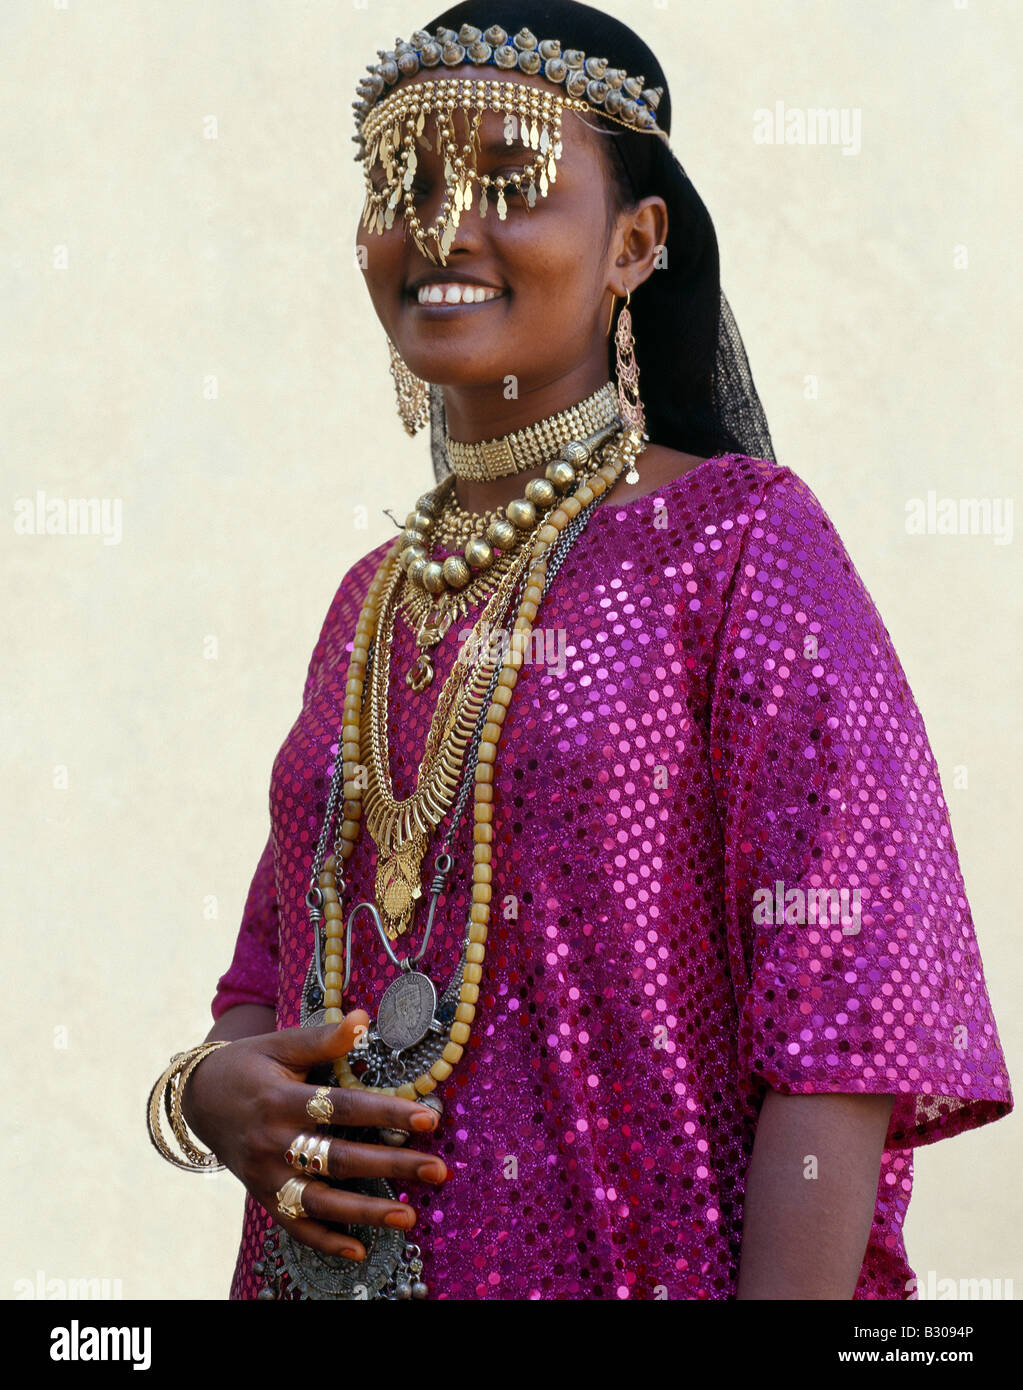 Djibouti, Tadjoura. An Afar girl from the Sultanate of Tadjoura wears exotic gold jewellery for marriage - Stock Image